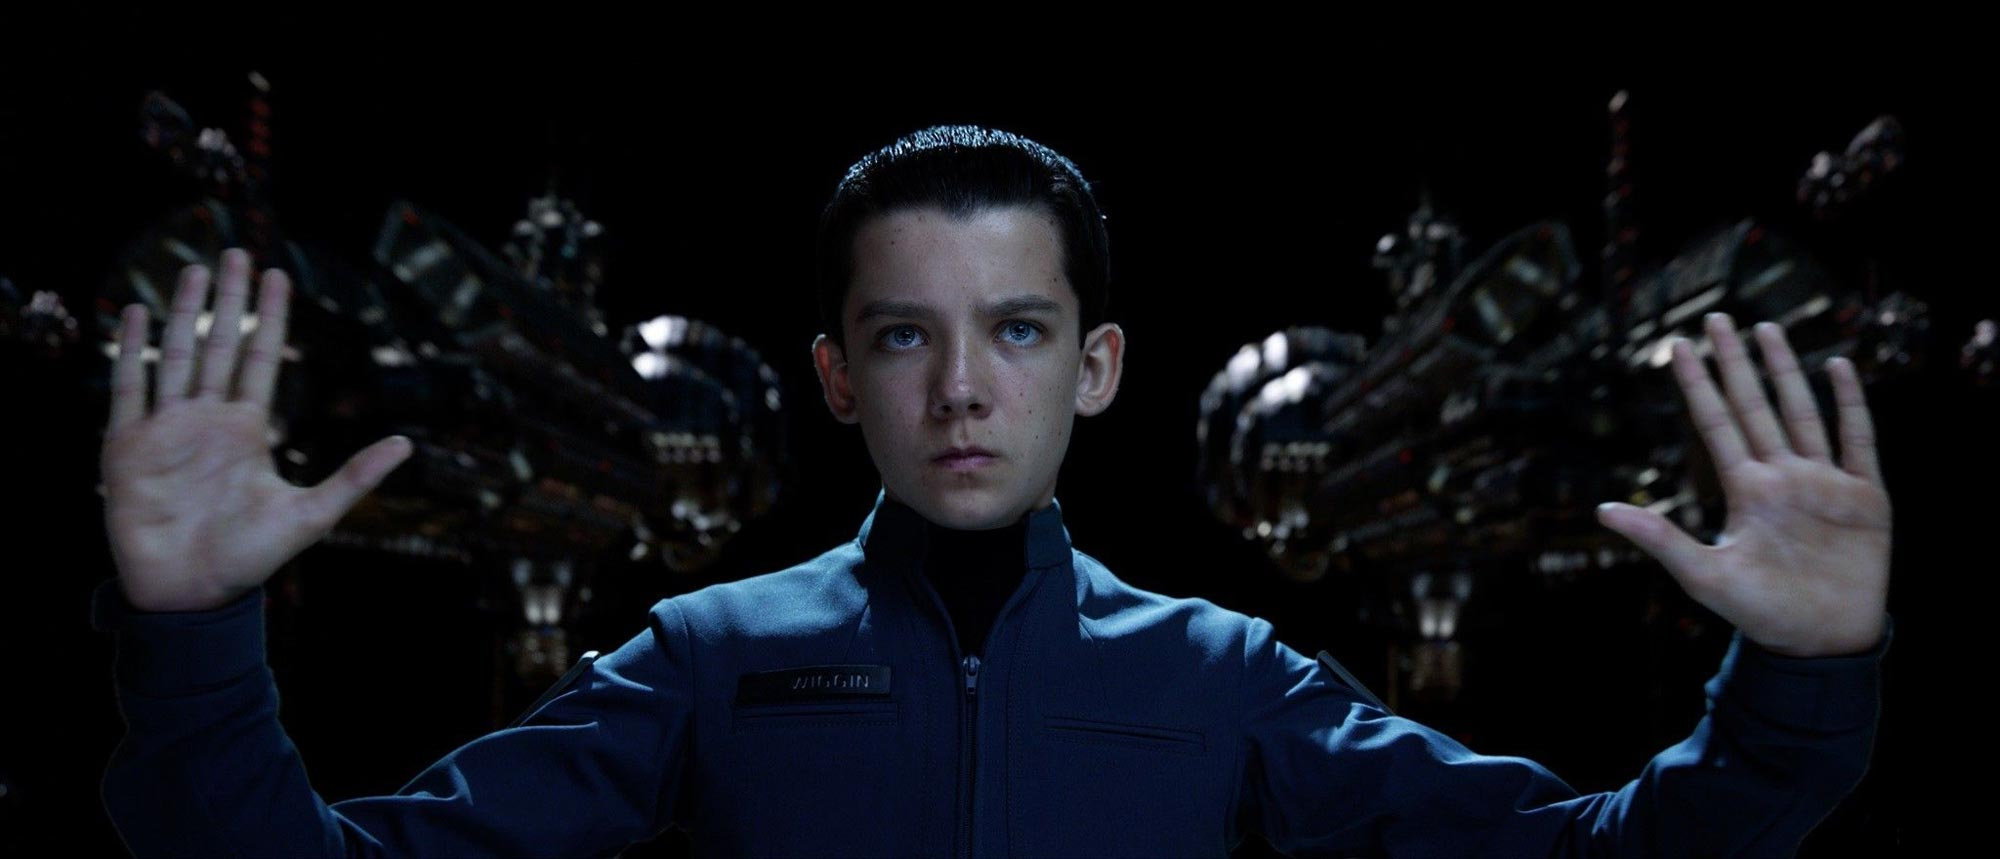 Asa Butterfield as Ender Wiggin in Ender's Game (2013)